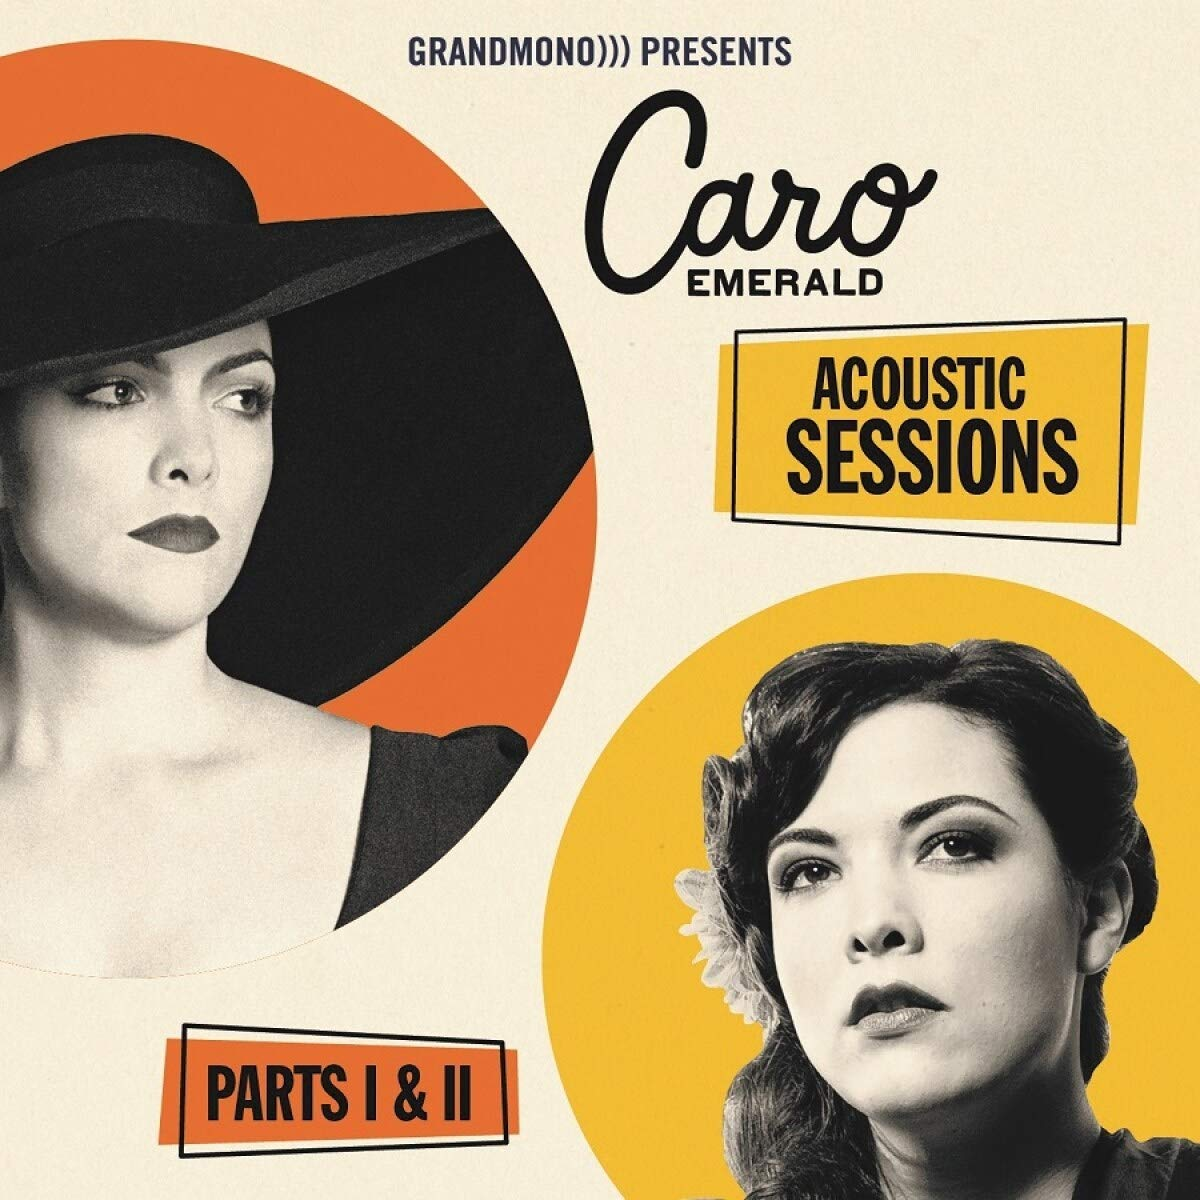 Acoustic Sessions - Parts I + II - Caro Emerald